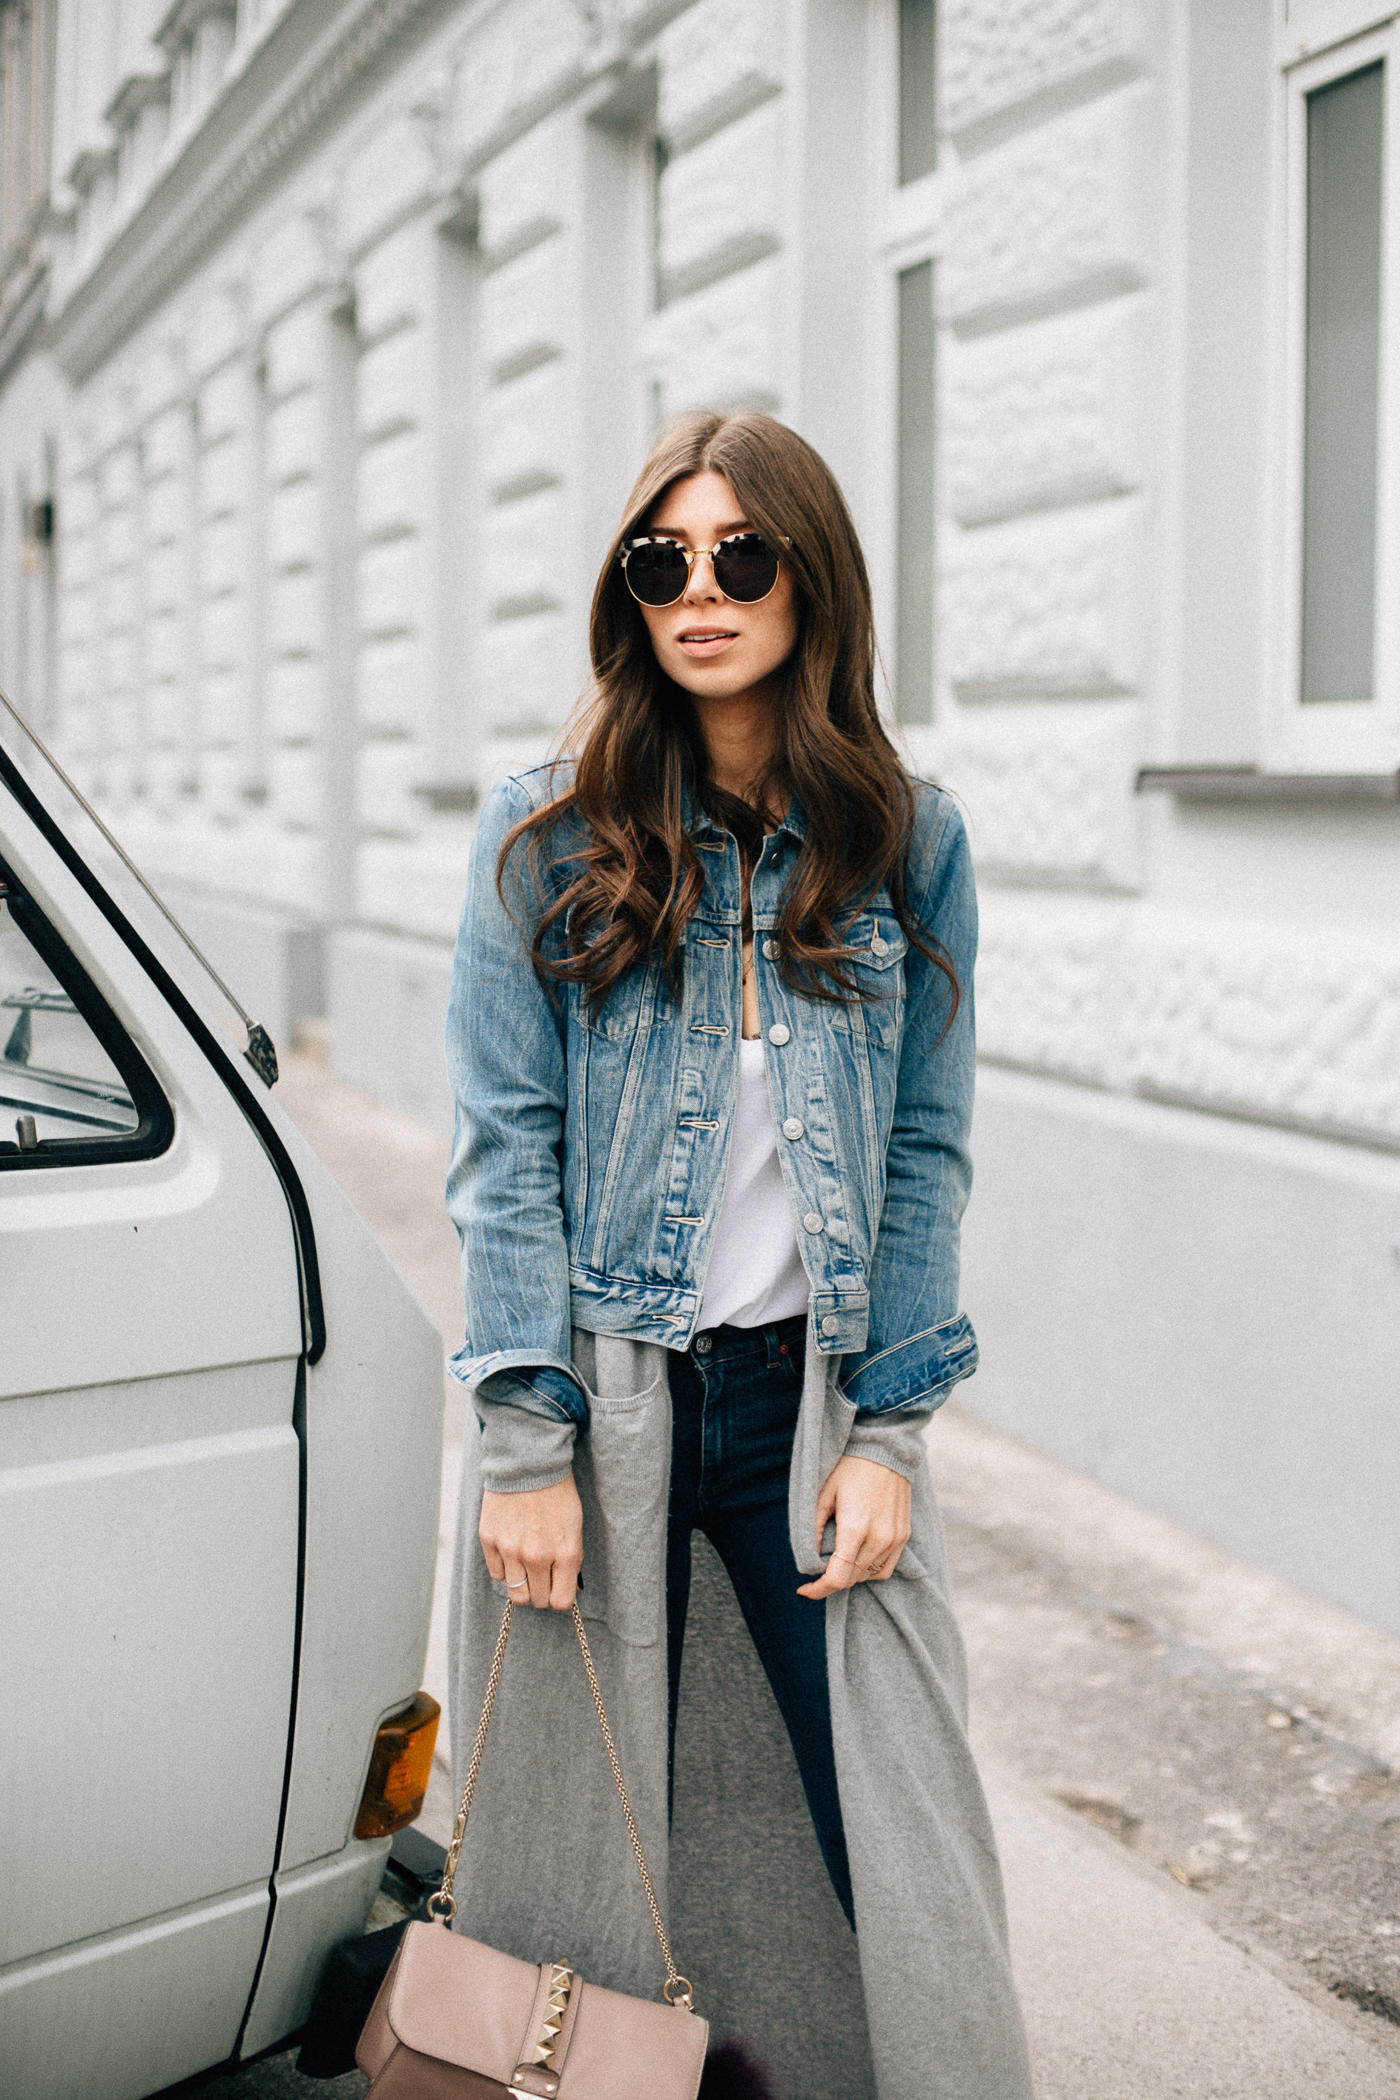 How To Wear Denim A Jacket - Outfit for Spring | Bikinis & Passports